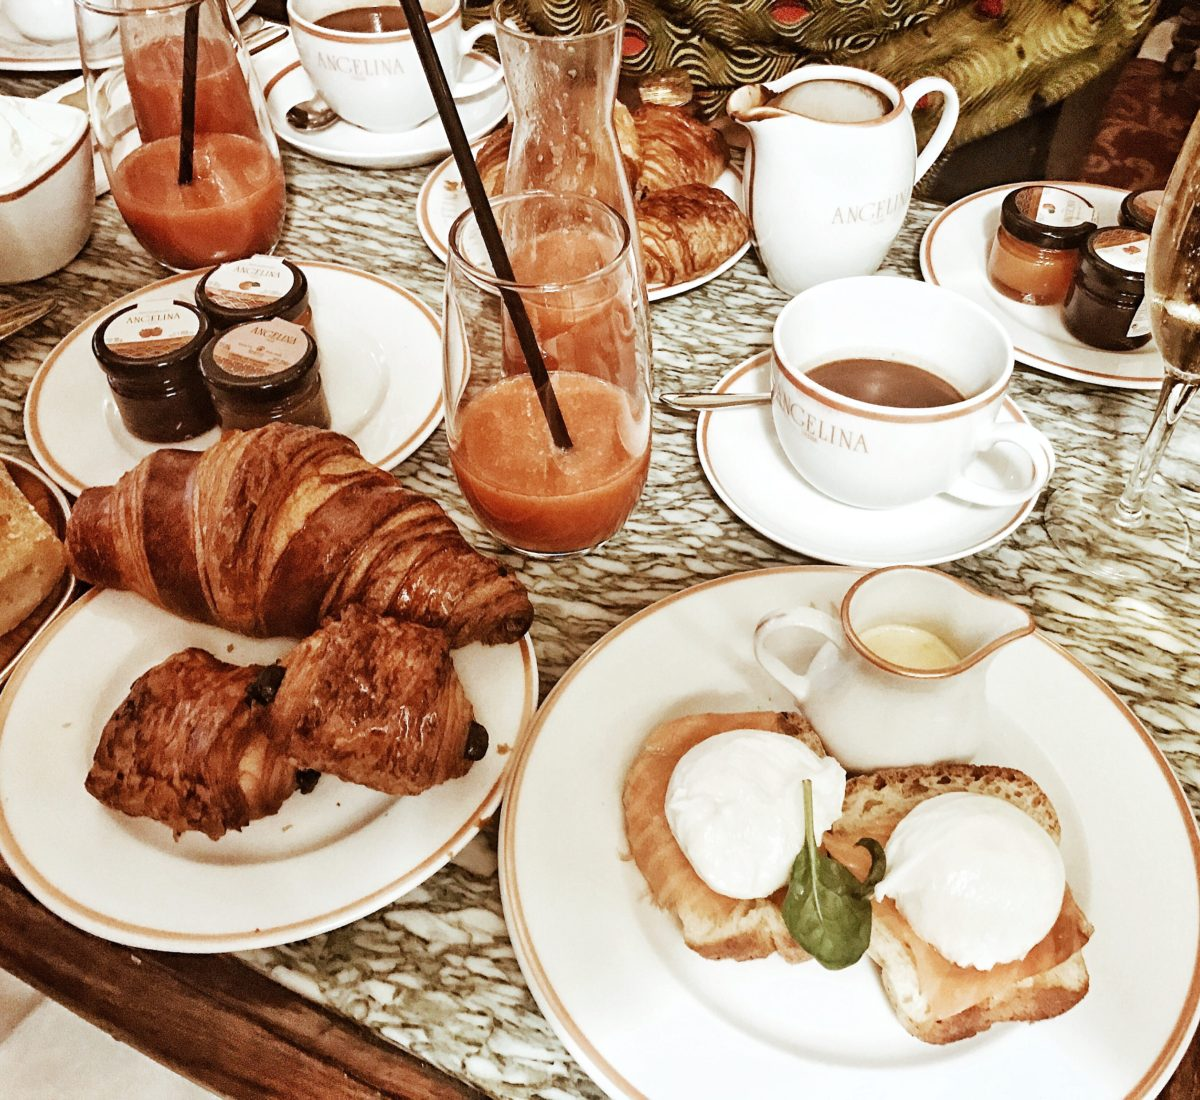 Brunch_Angelina_paris_detox_vacation_tips_chataigne_style